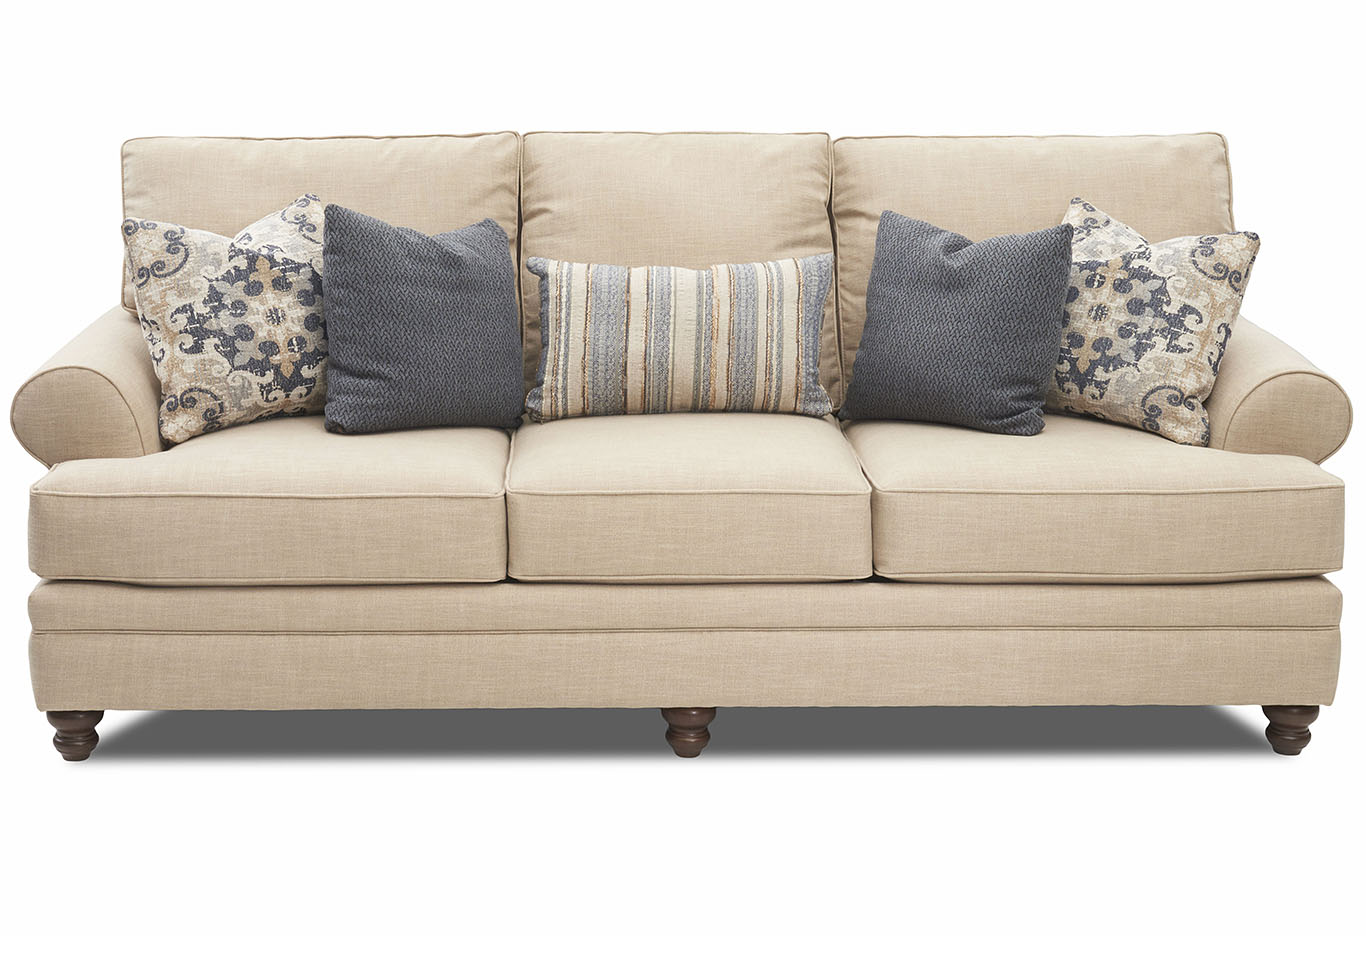 Darcy Beige Stationary Fabric Sofa Jesup Furniture Outlet